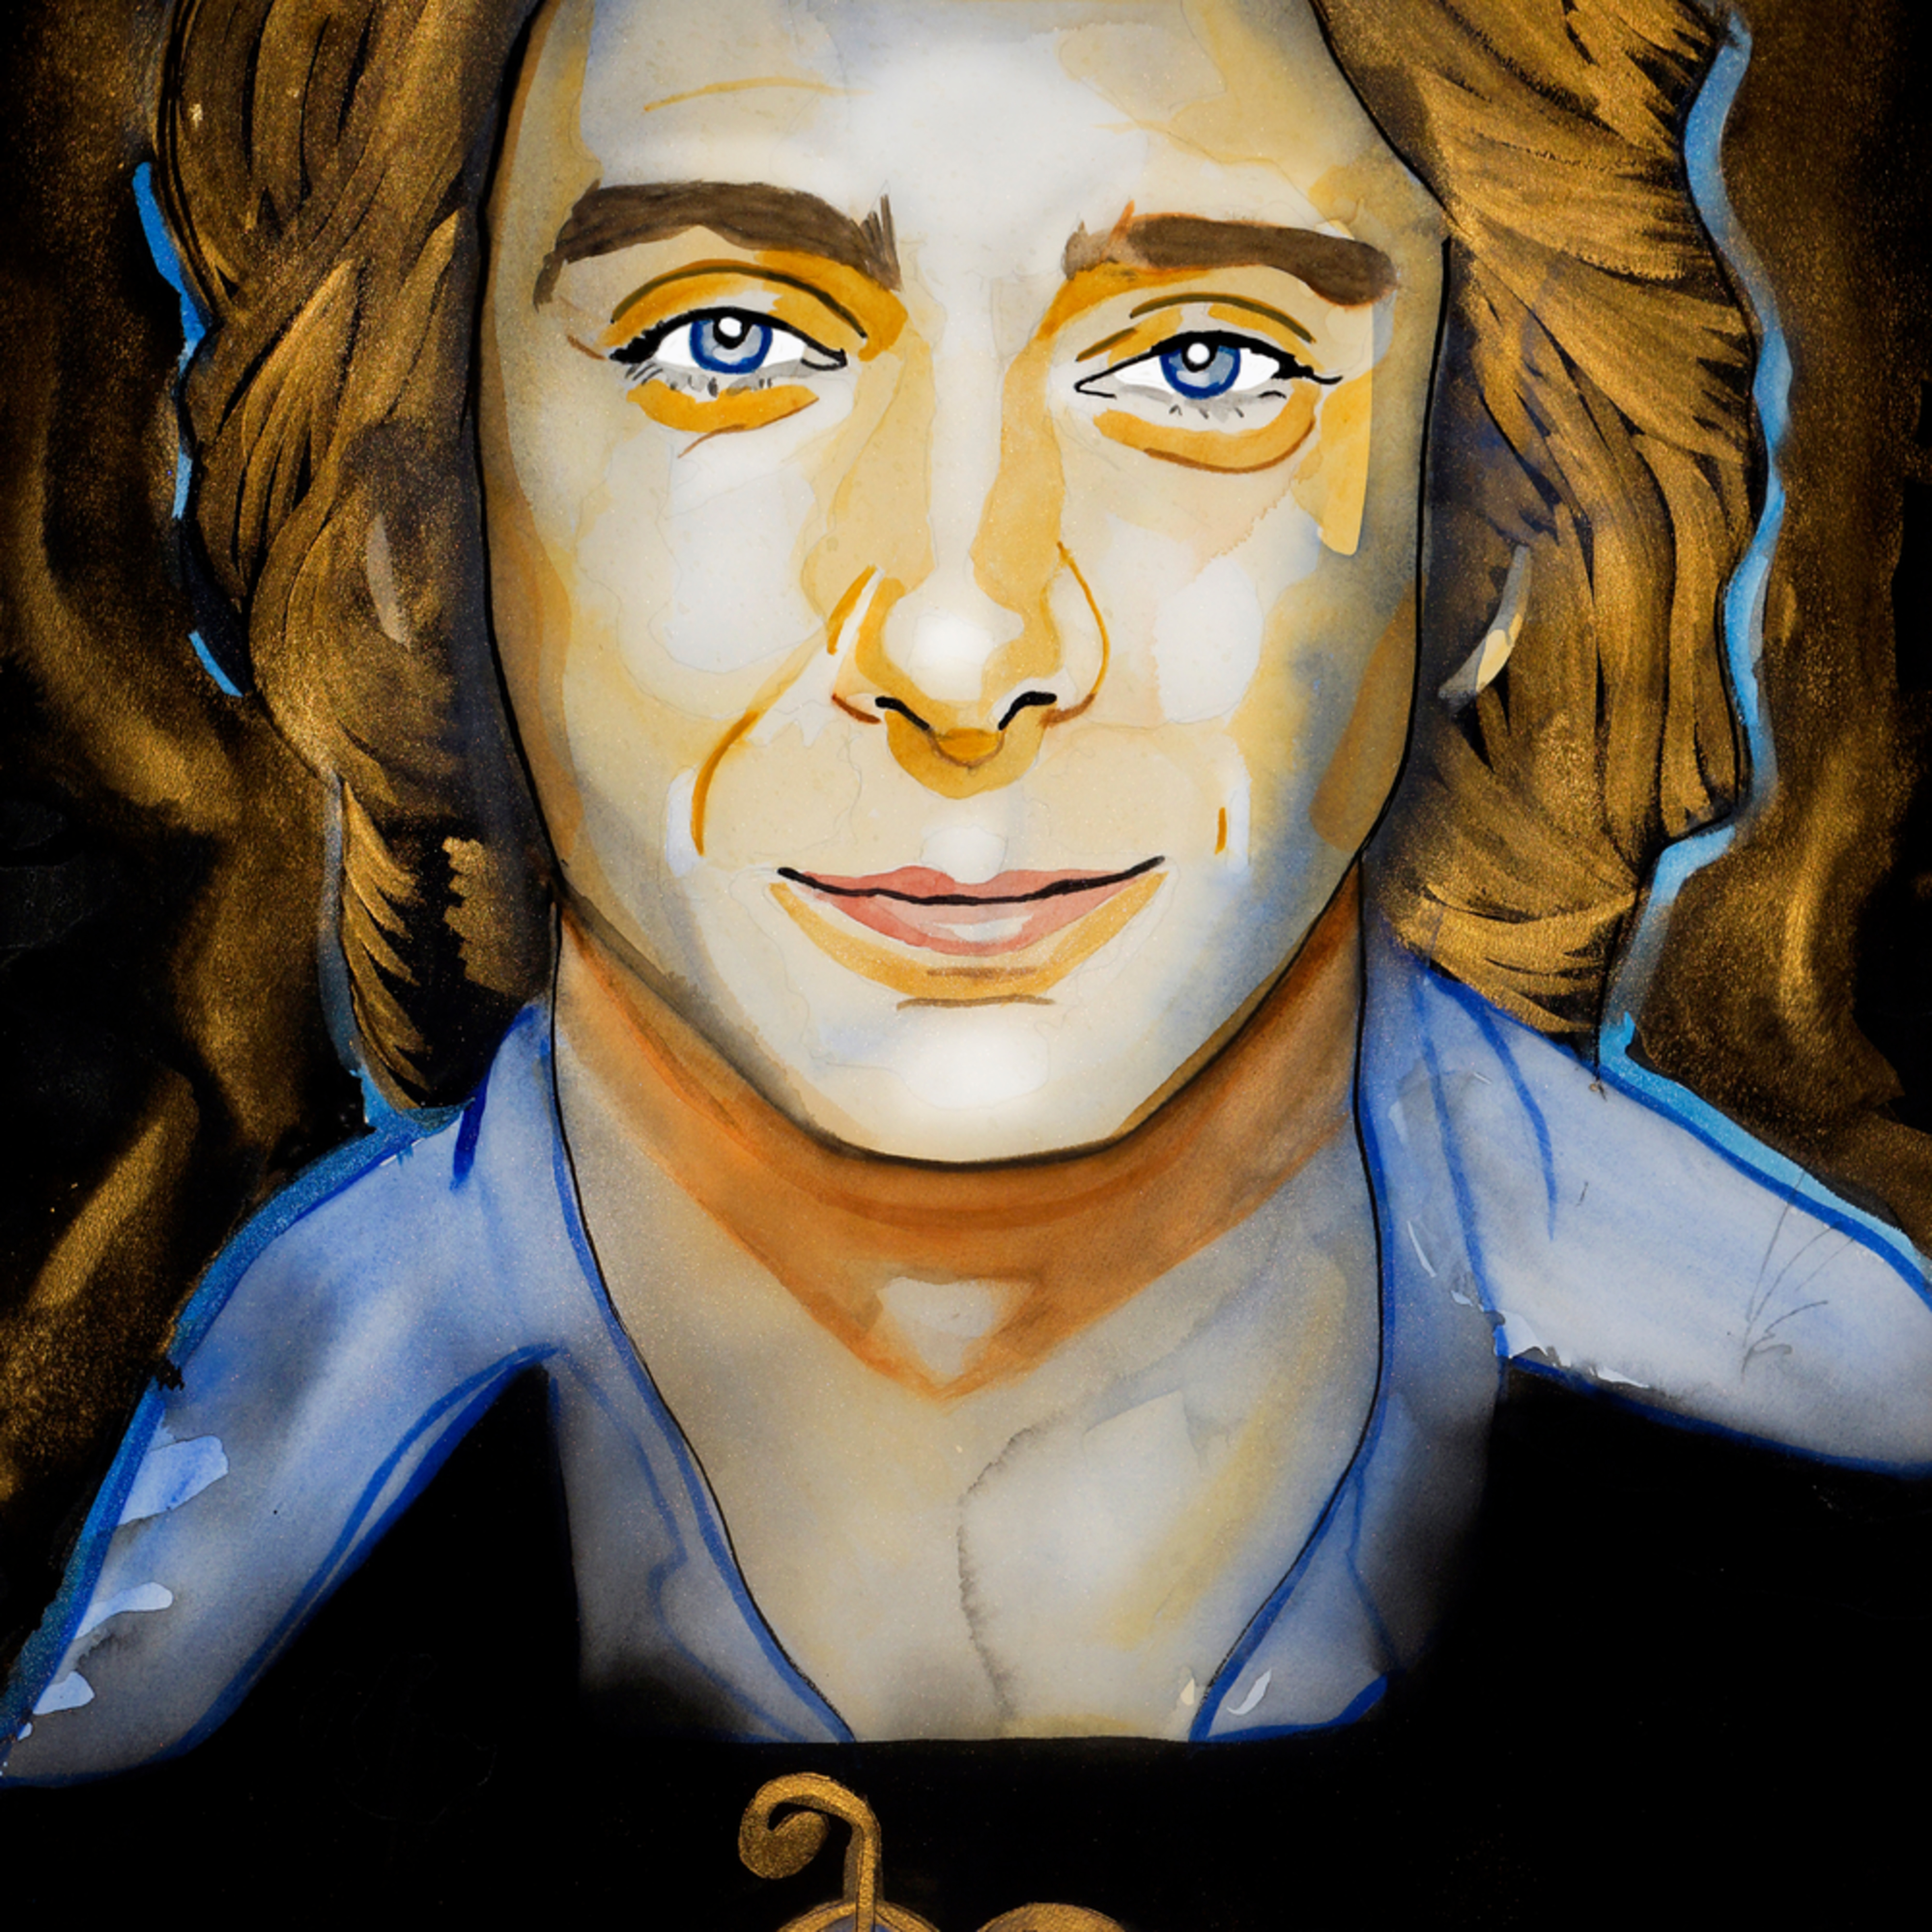 Barry manilow o bue1ad